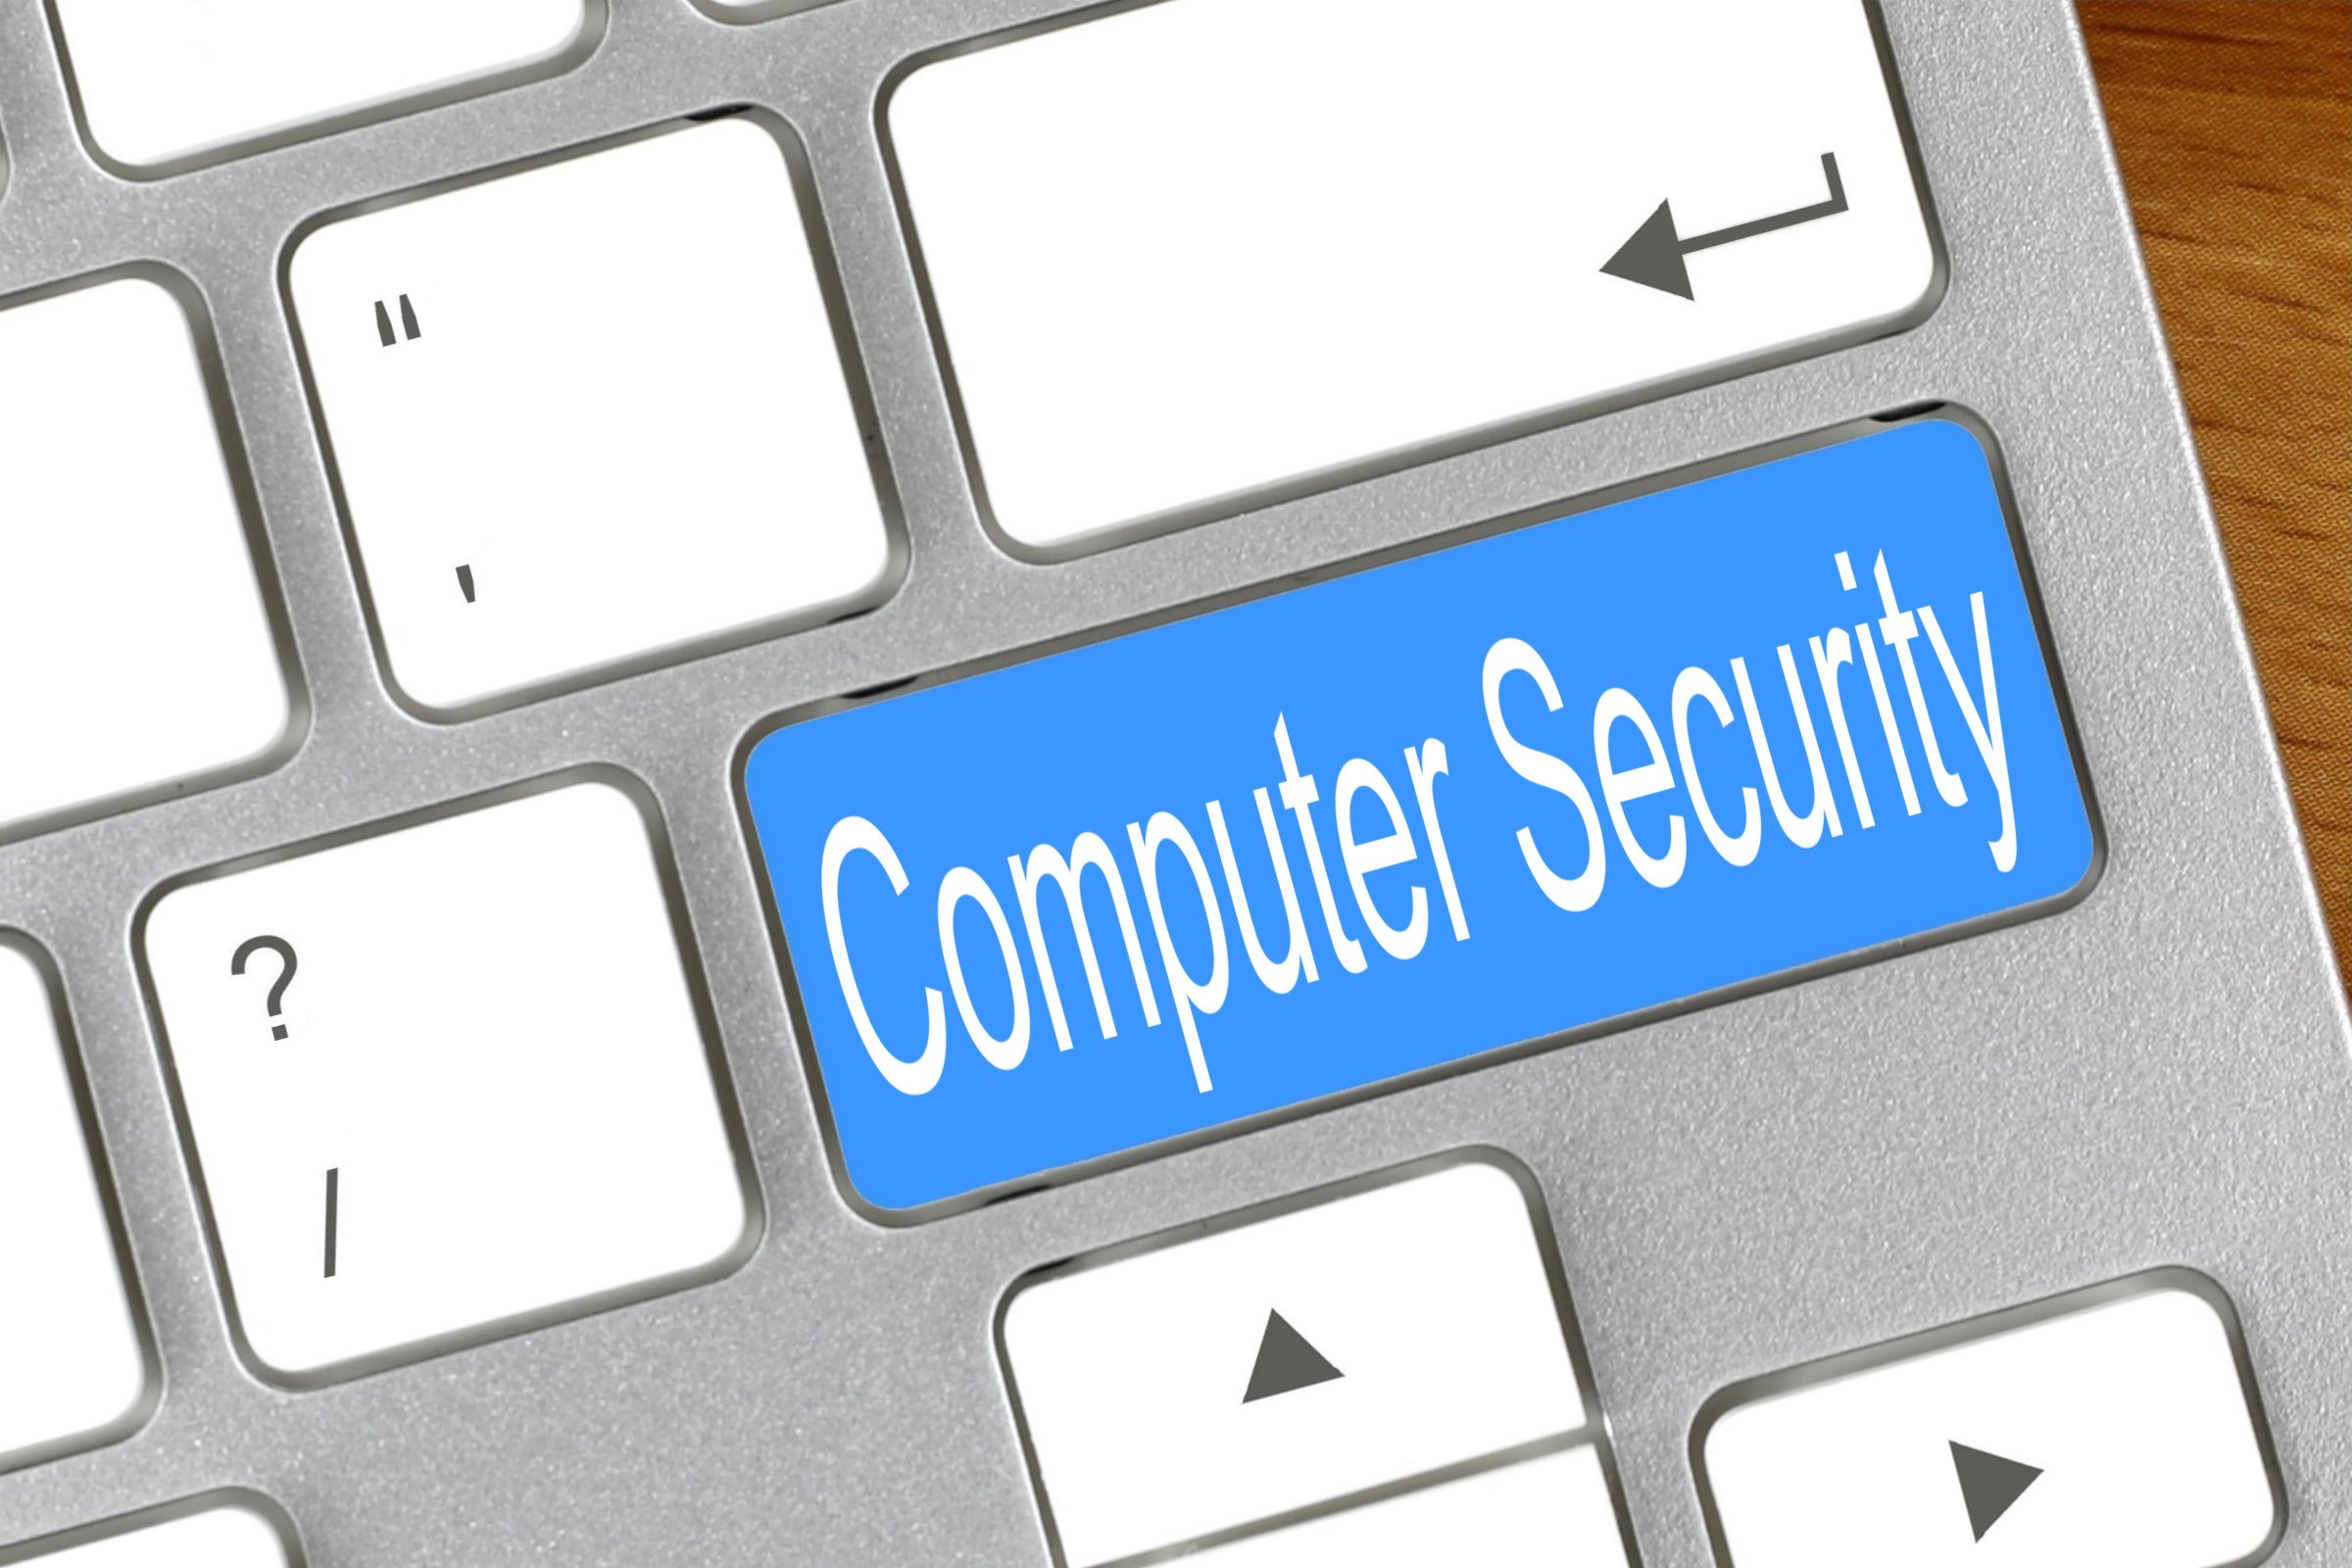 Computer Security - Free of Charge Creative Commons Keyboard image